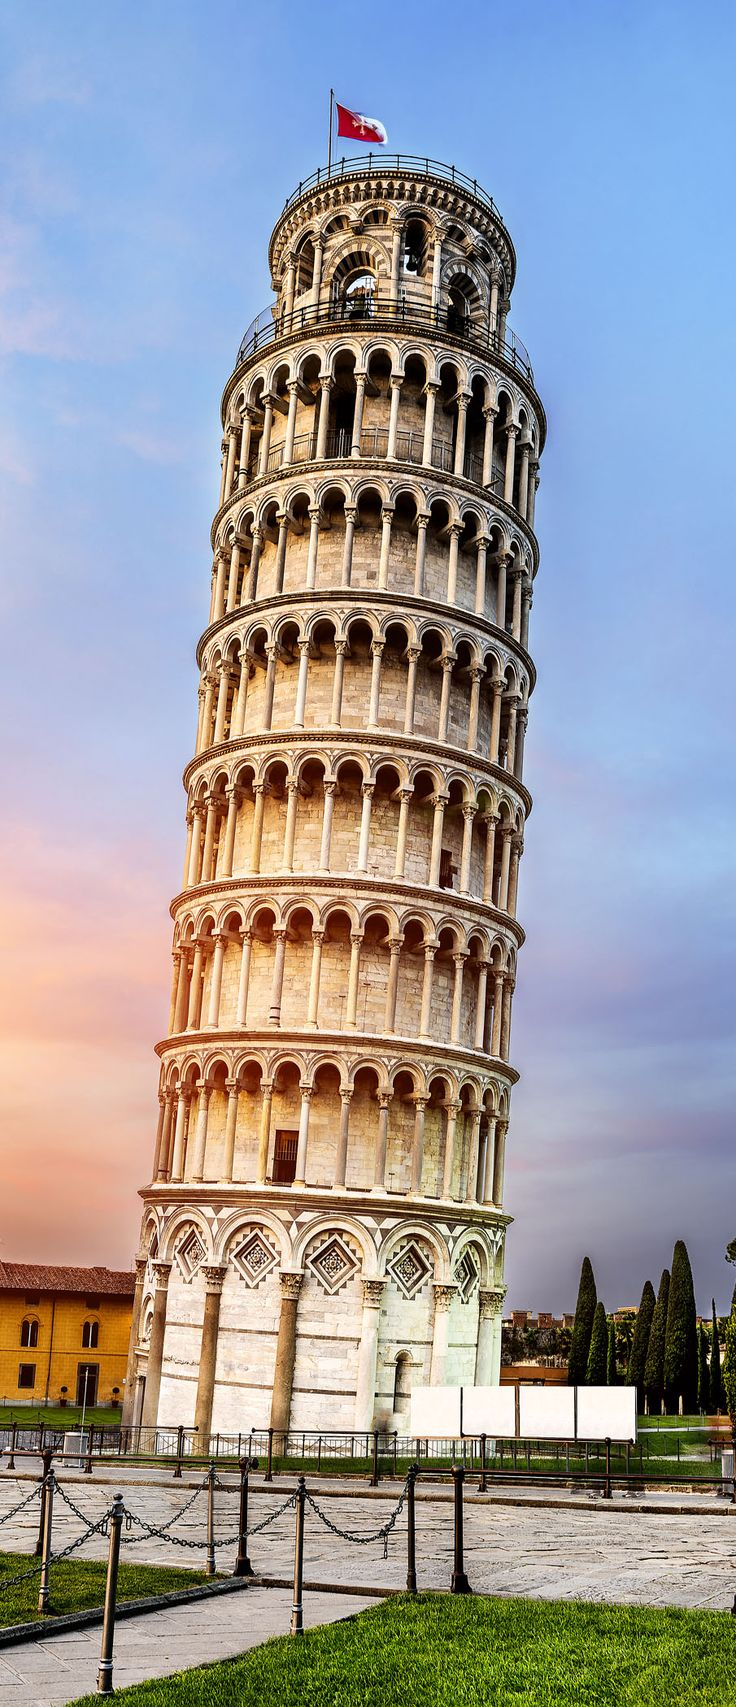 Pisa, place of miracles: The leaning tower. Tuscany, Italy   |    15 Most Colorful Shots of Italy